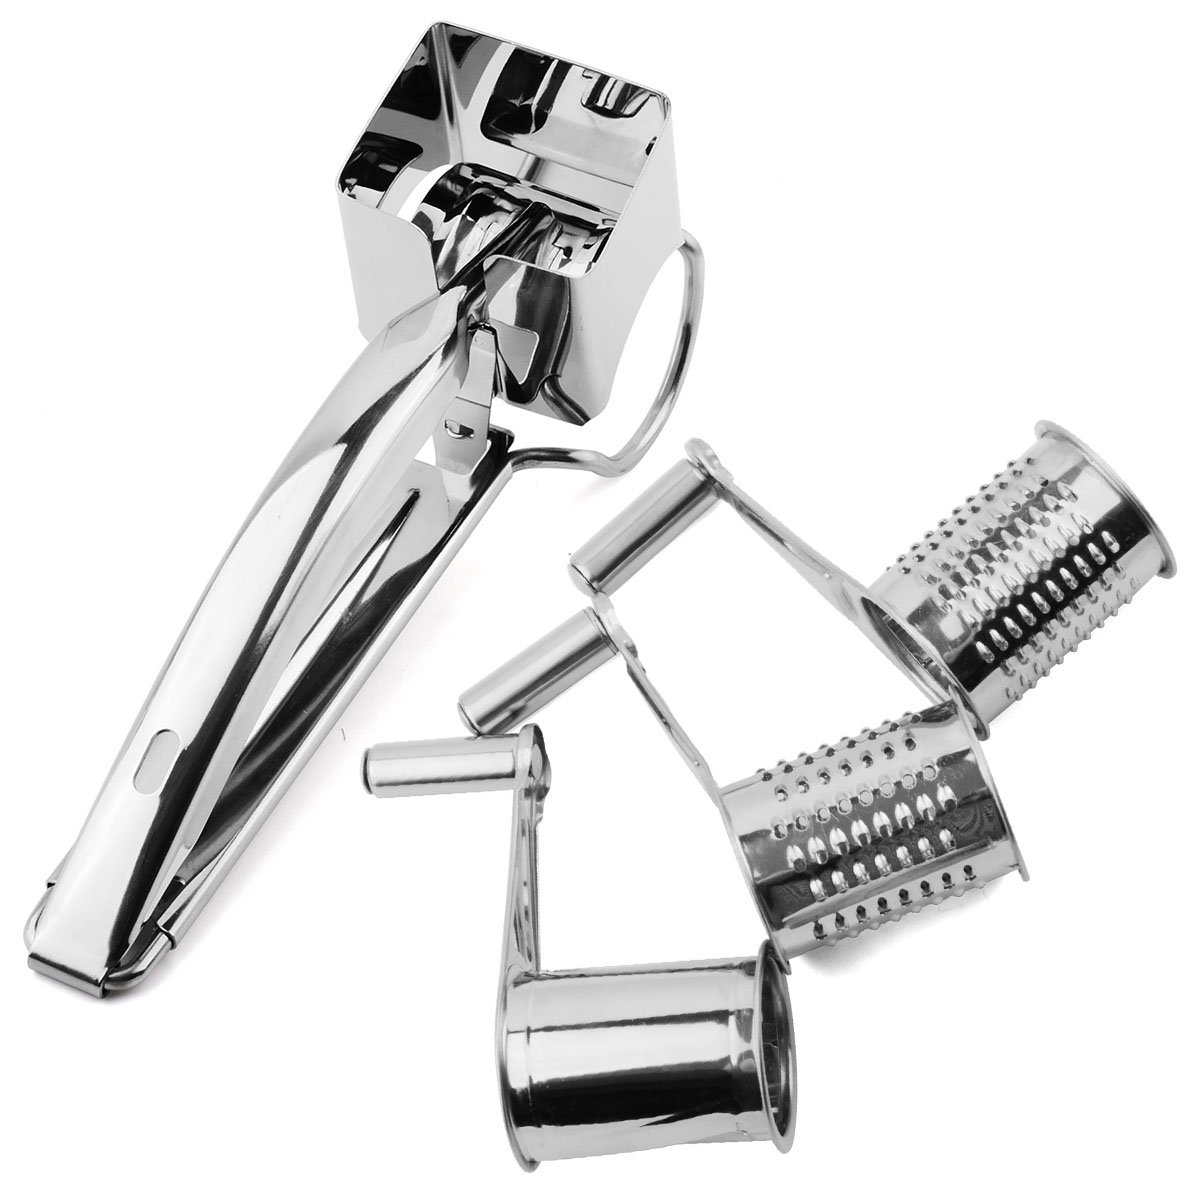 yijia 3 Drums/Set Rotary Cheese Grater Stainless Steel Cheese Slicer Kitchen Cheese Butter Cutter For Cake Chocolate Fondue